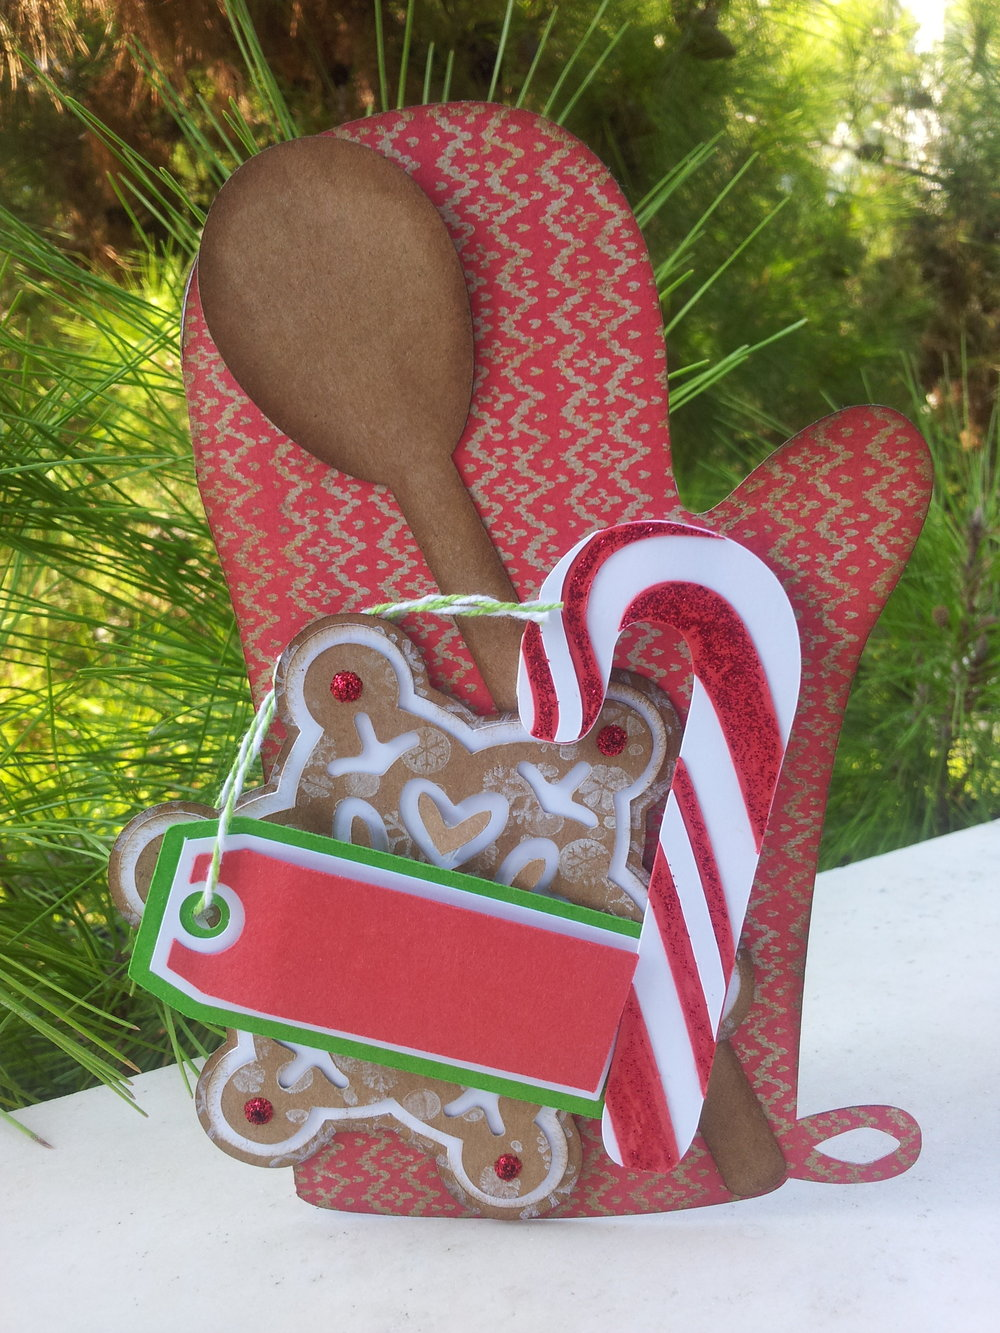 Oven-mitt shaped card